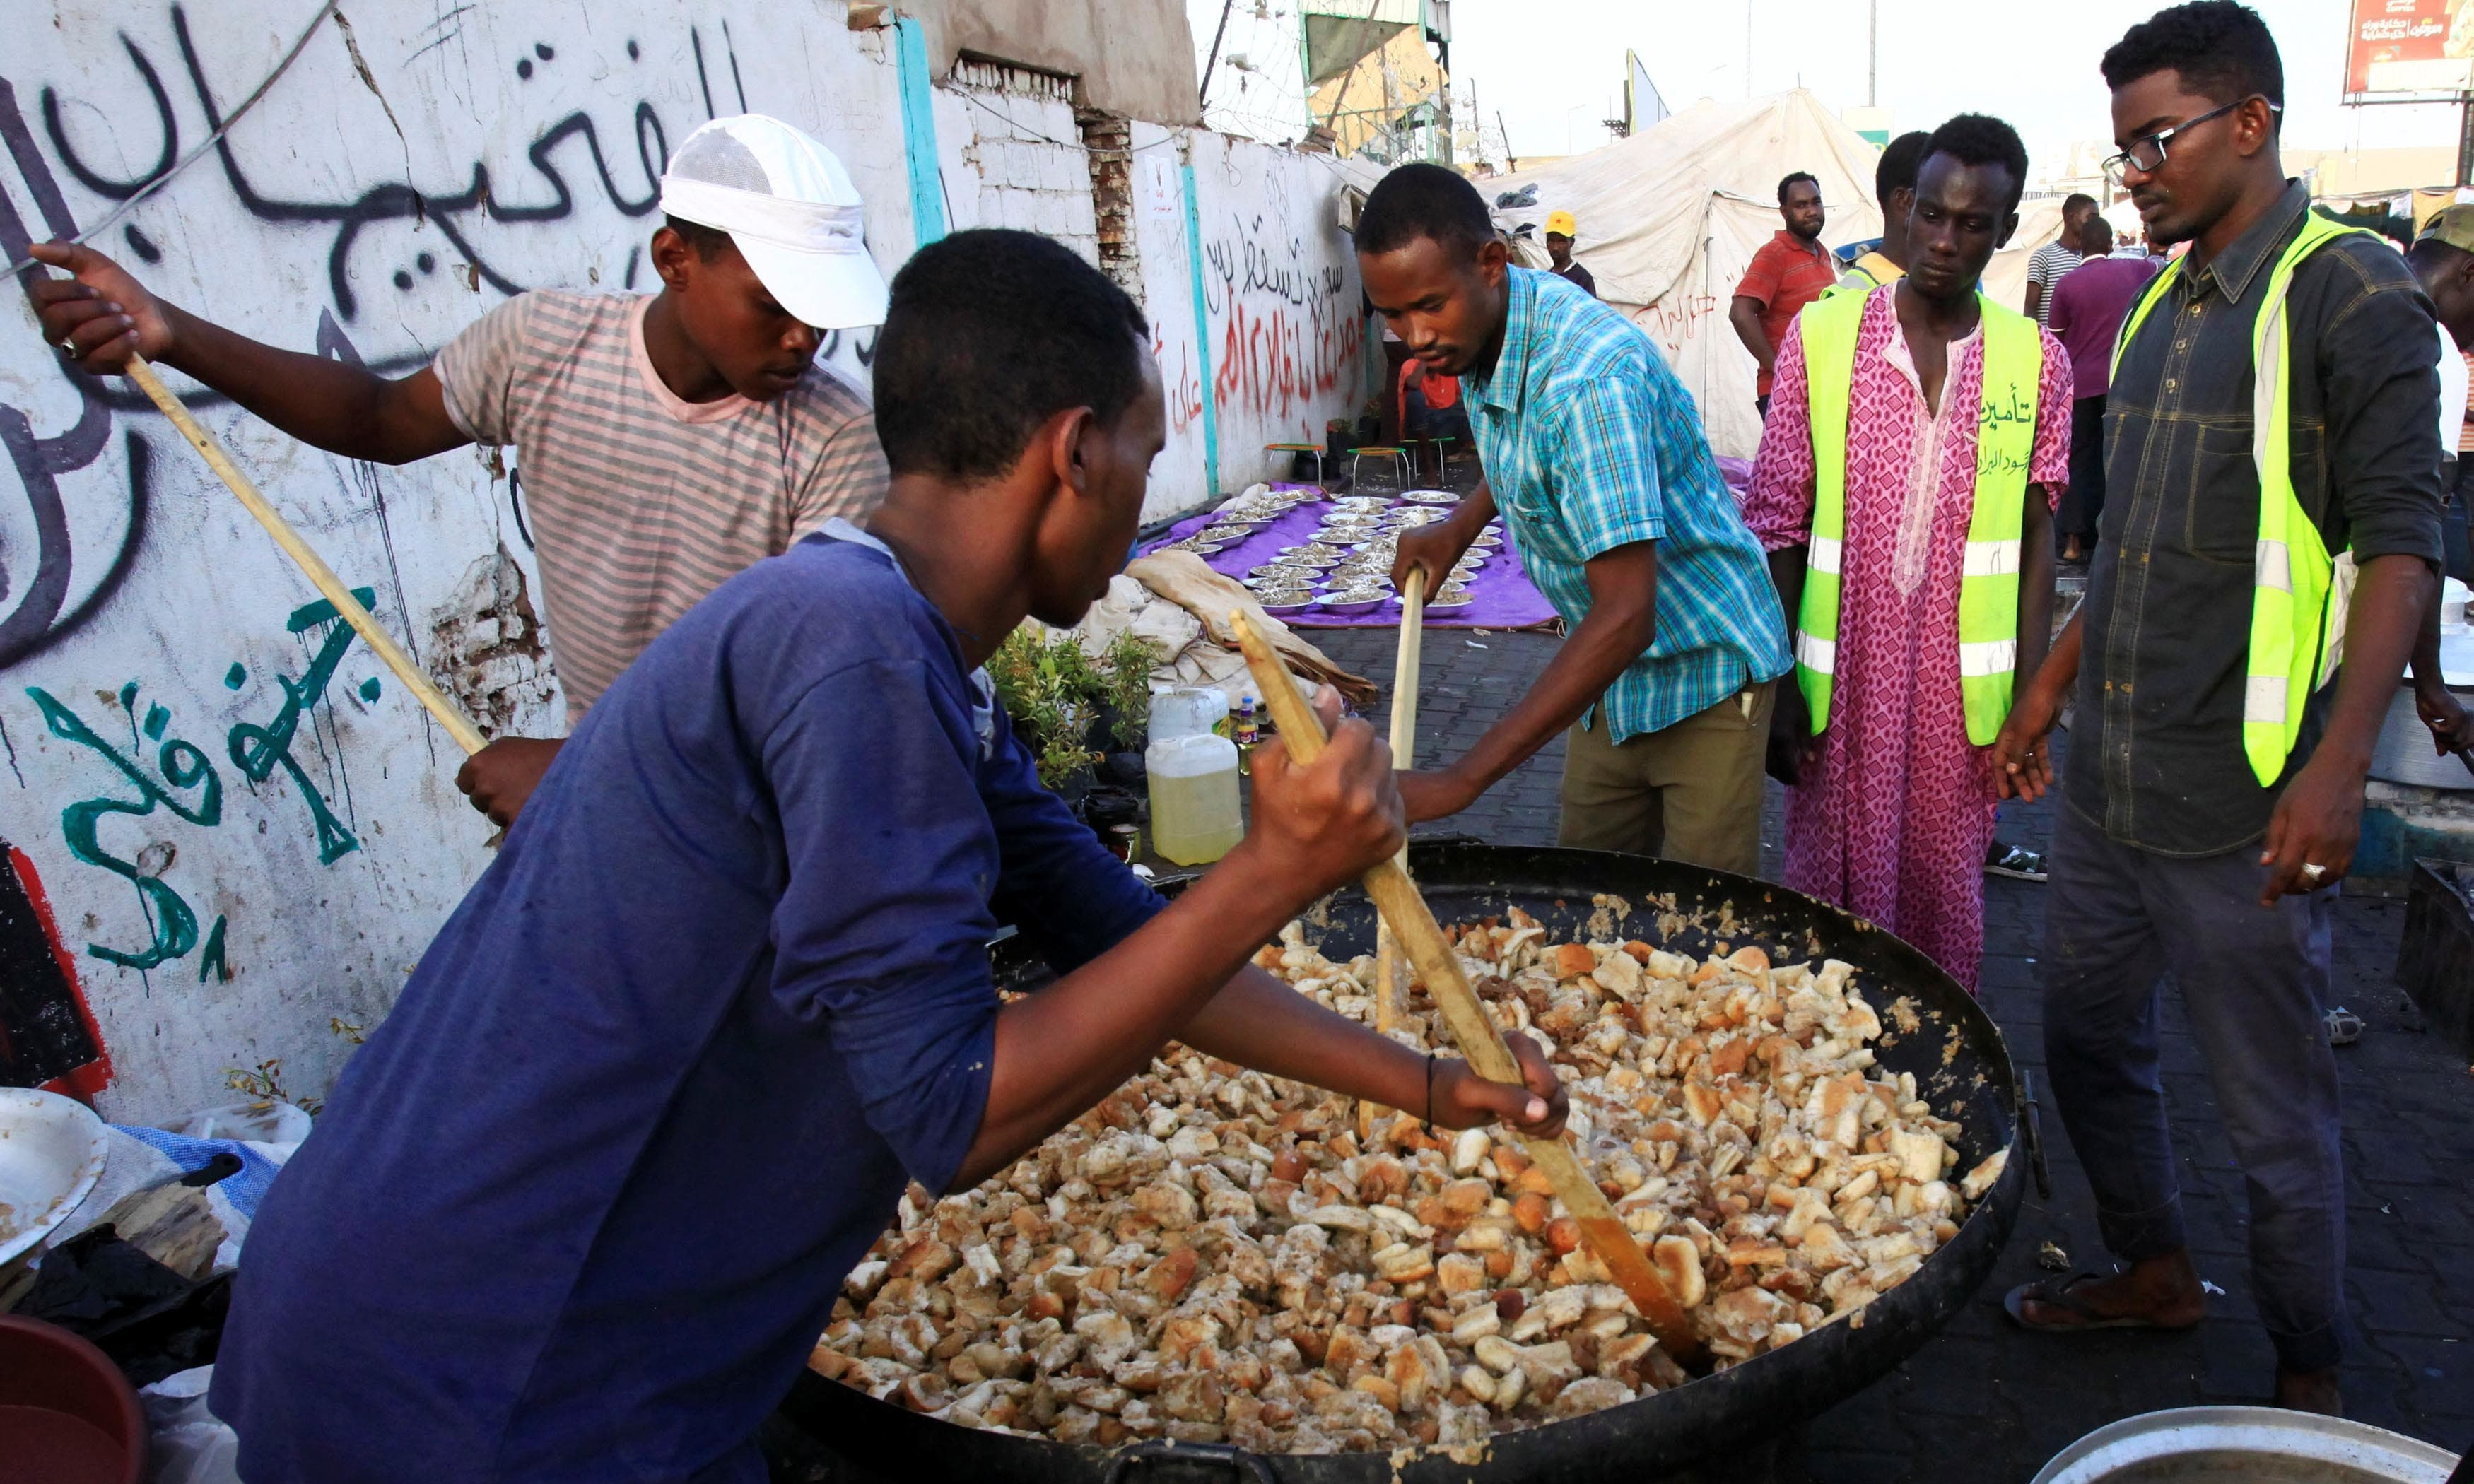 Sudanese protesters mix Iftar as they prepare to break their fast in front of the Defence Ministry compound in Khartoum, Sudan. — Reuters